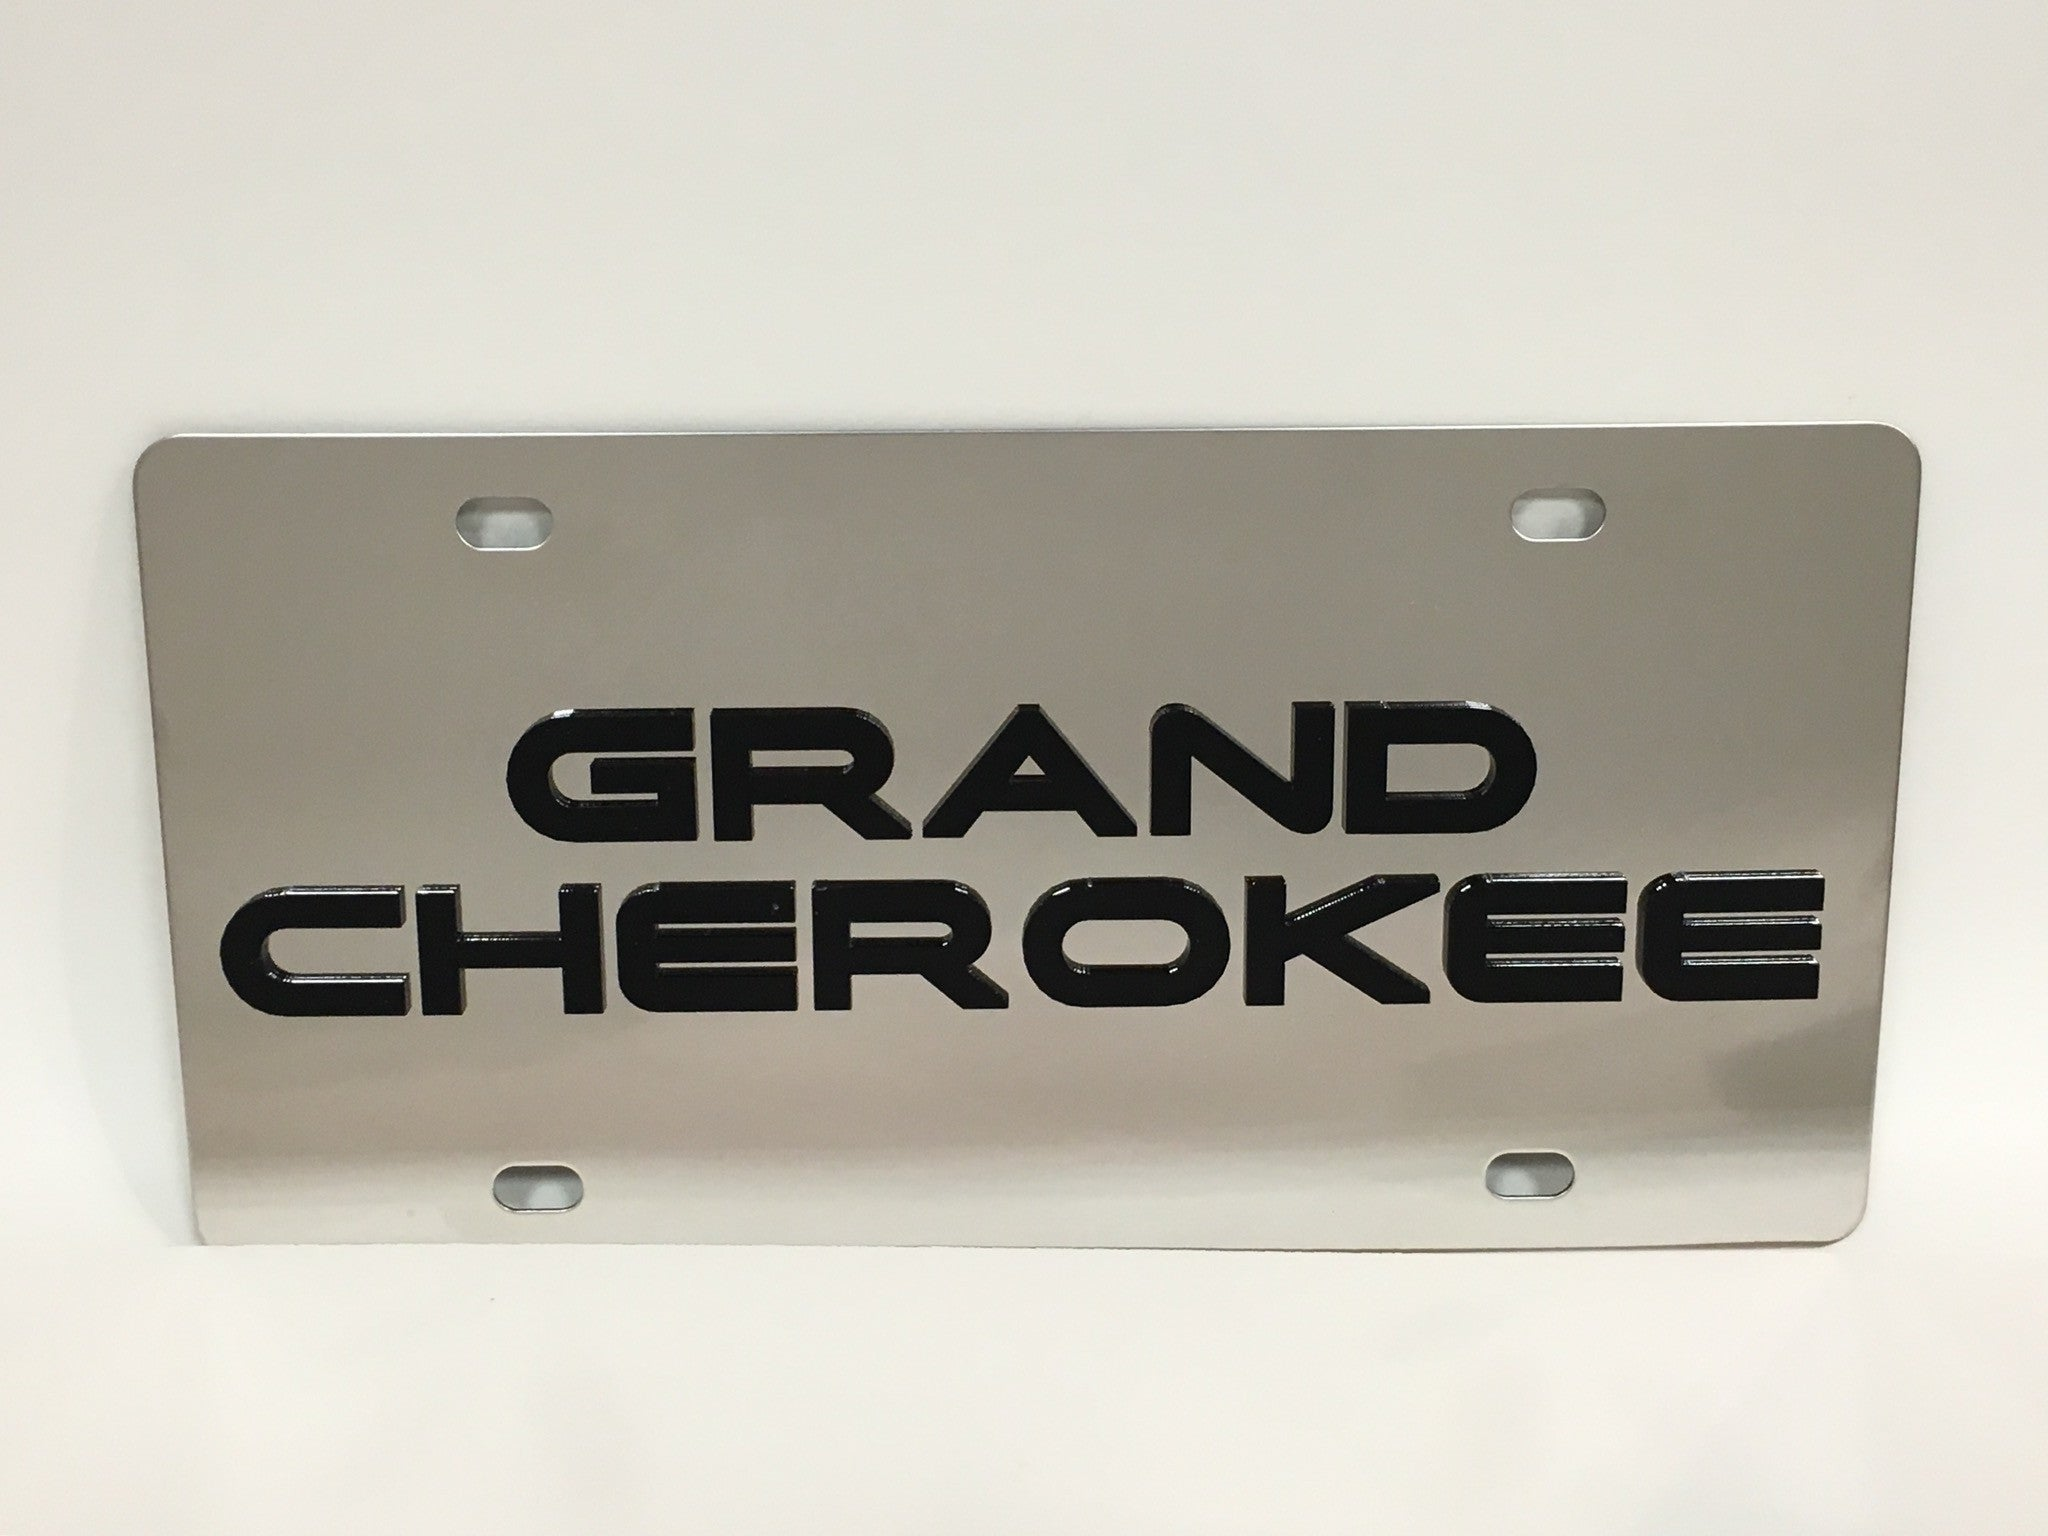 Jeep Grand Cherokee Stainless Steel License Plate